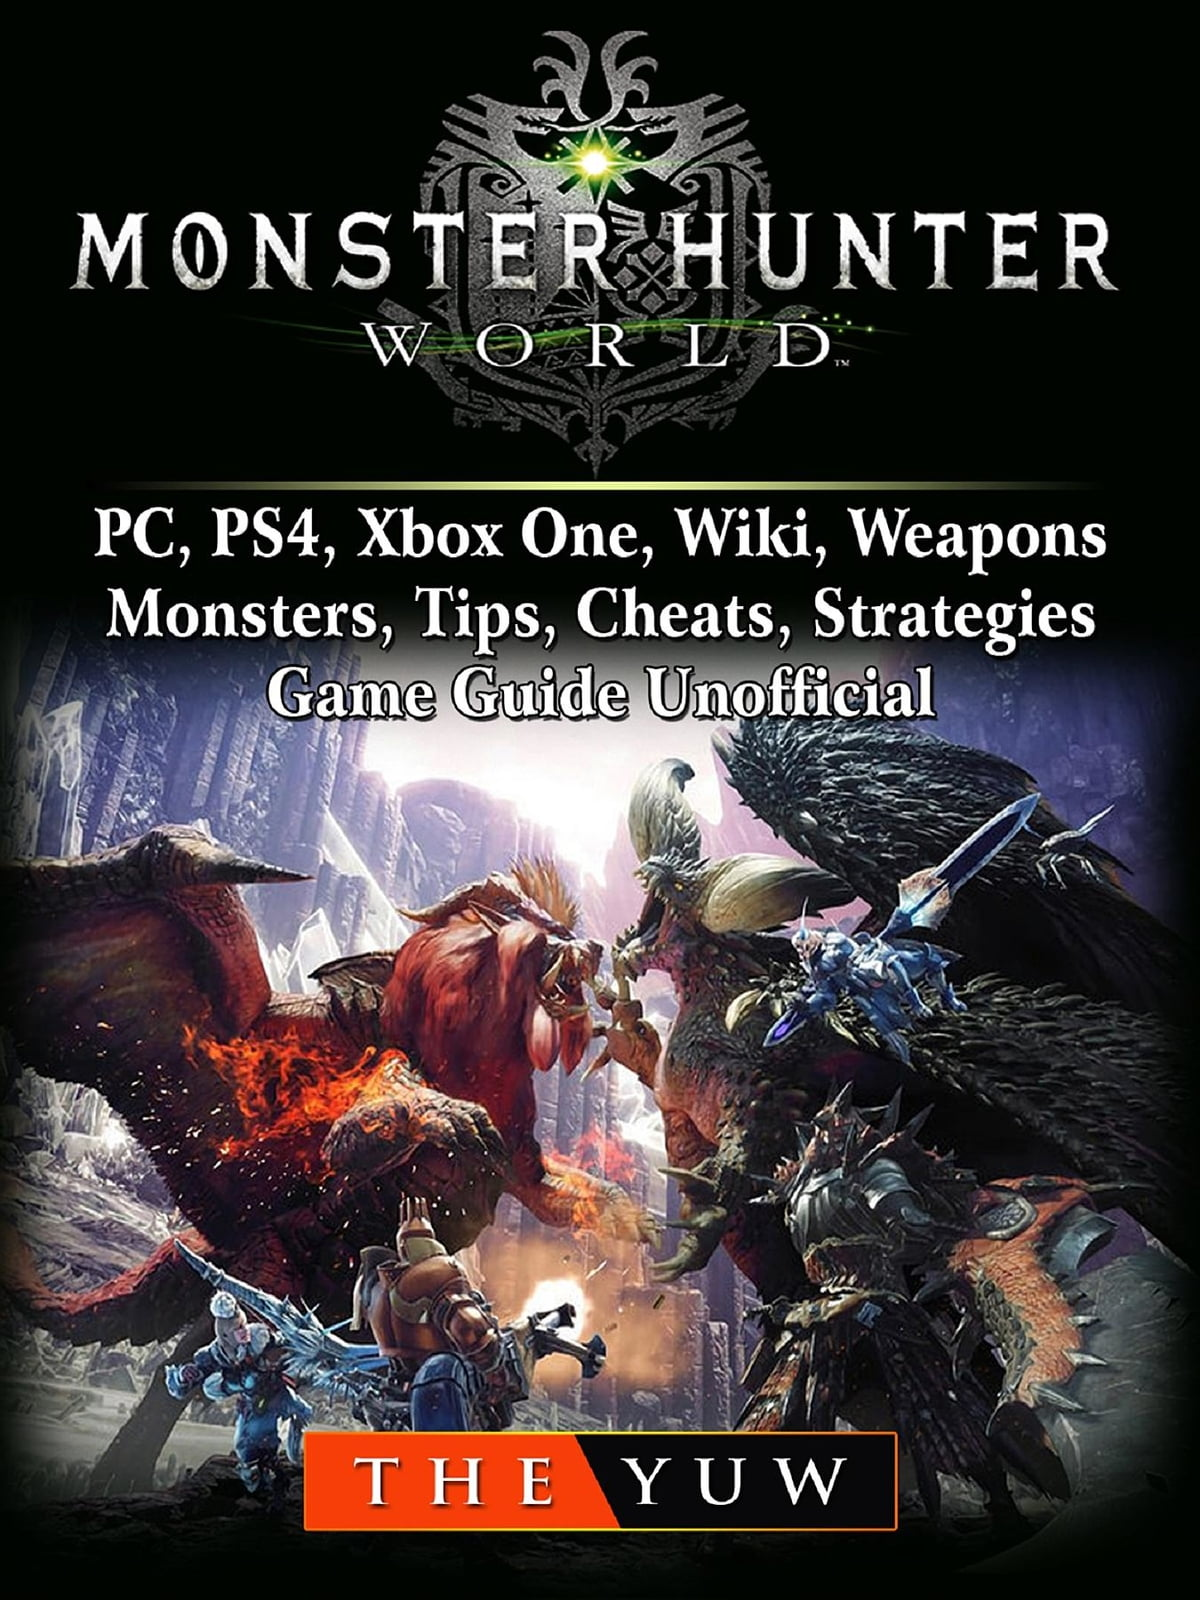 Monster Hunter World, PC, PS4, Xbox One, Wiki, Weapons, Monsters, Tips,  Cheats, Strategies, Game Guide Unofficial eBook by The Yuw - Rakuten Kobo